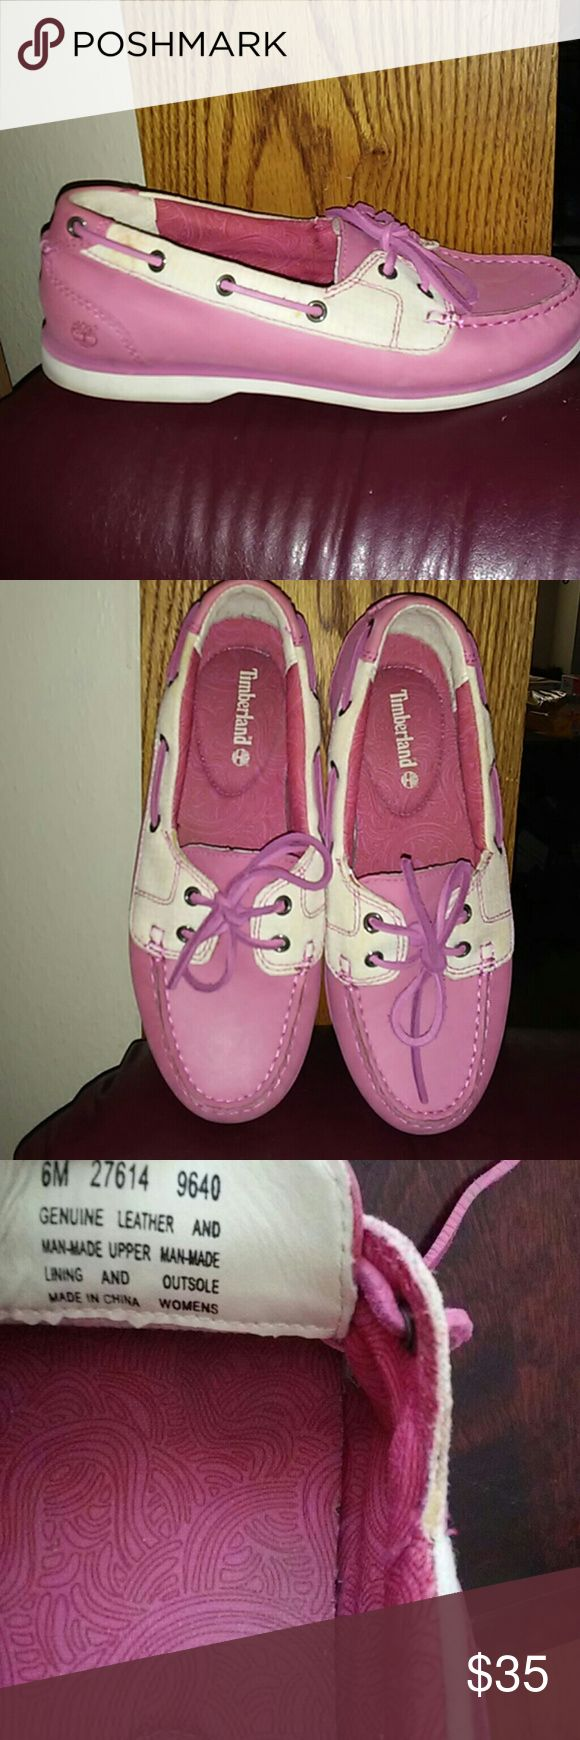 🌸PRICE⬇Womens SZ 6M Pink Boat Shoes🌸 Great used condition just need a light cleaning. See all pics. Last pic is a stock photo just to show brand new condition. No box with your purchase. Thank you for your interest 😃 Timberland Shoes Flats & Loafers